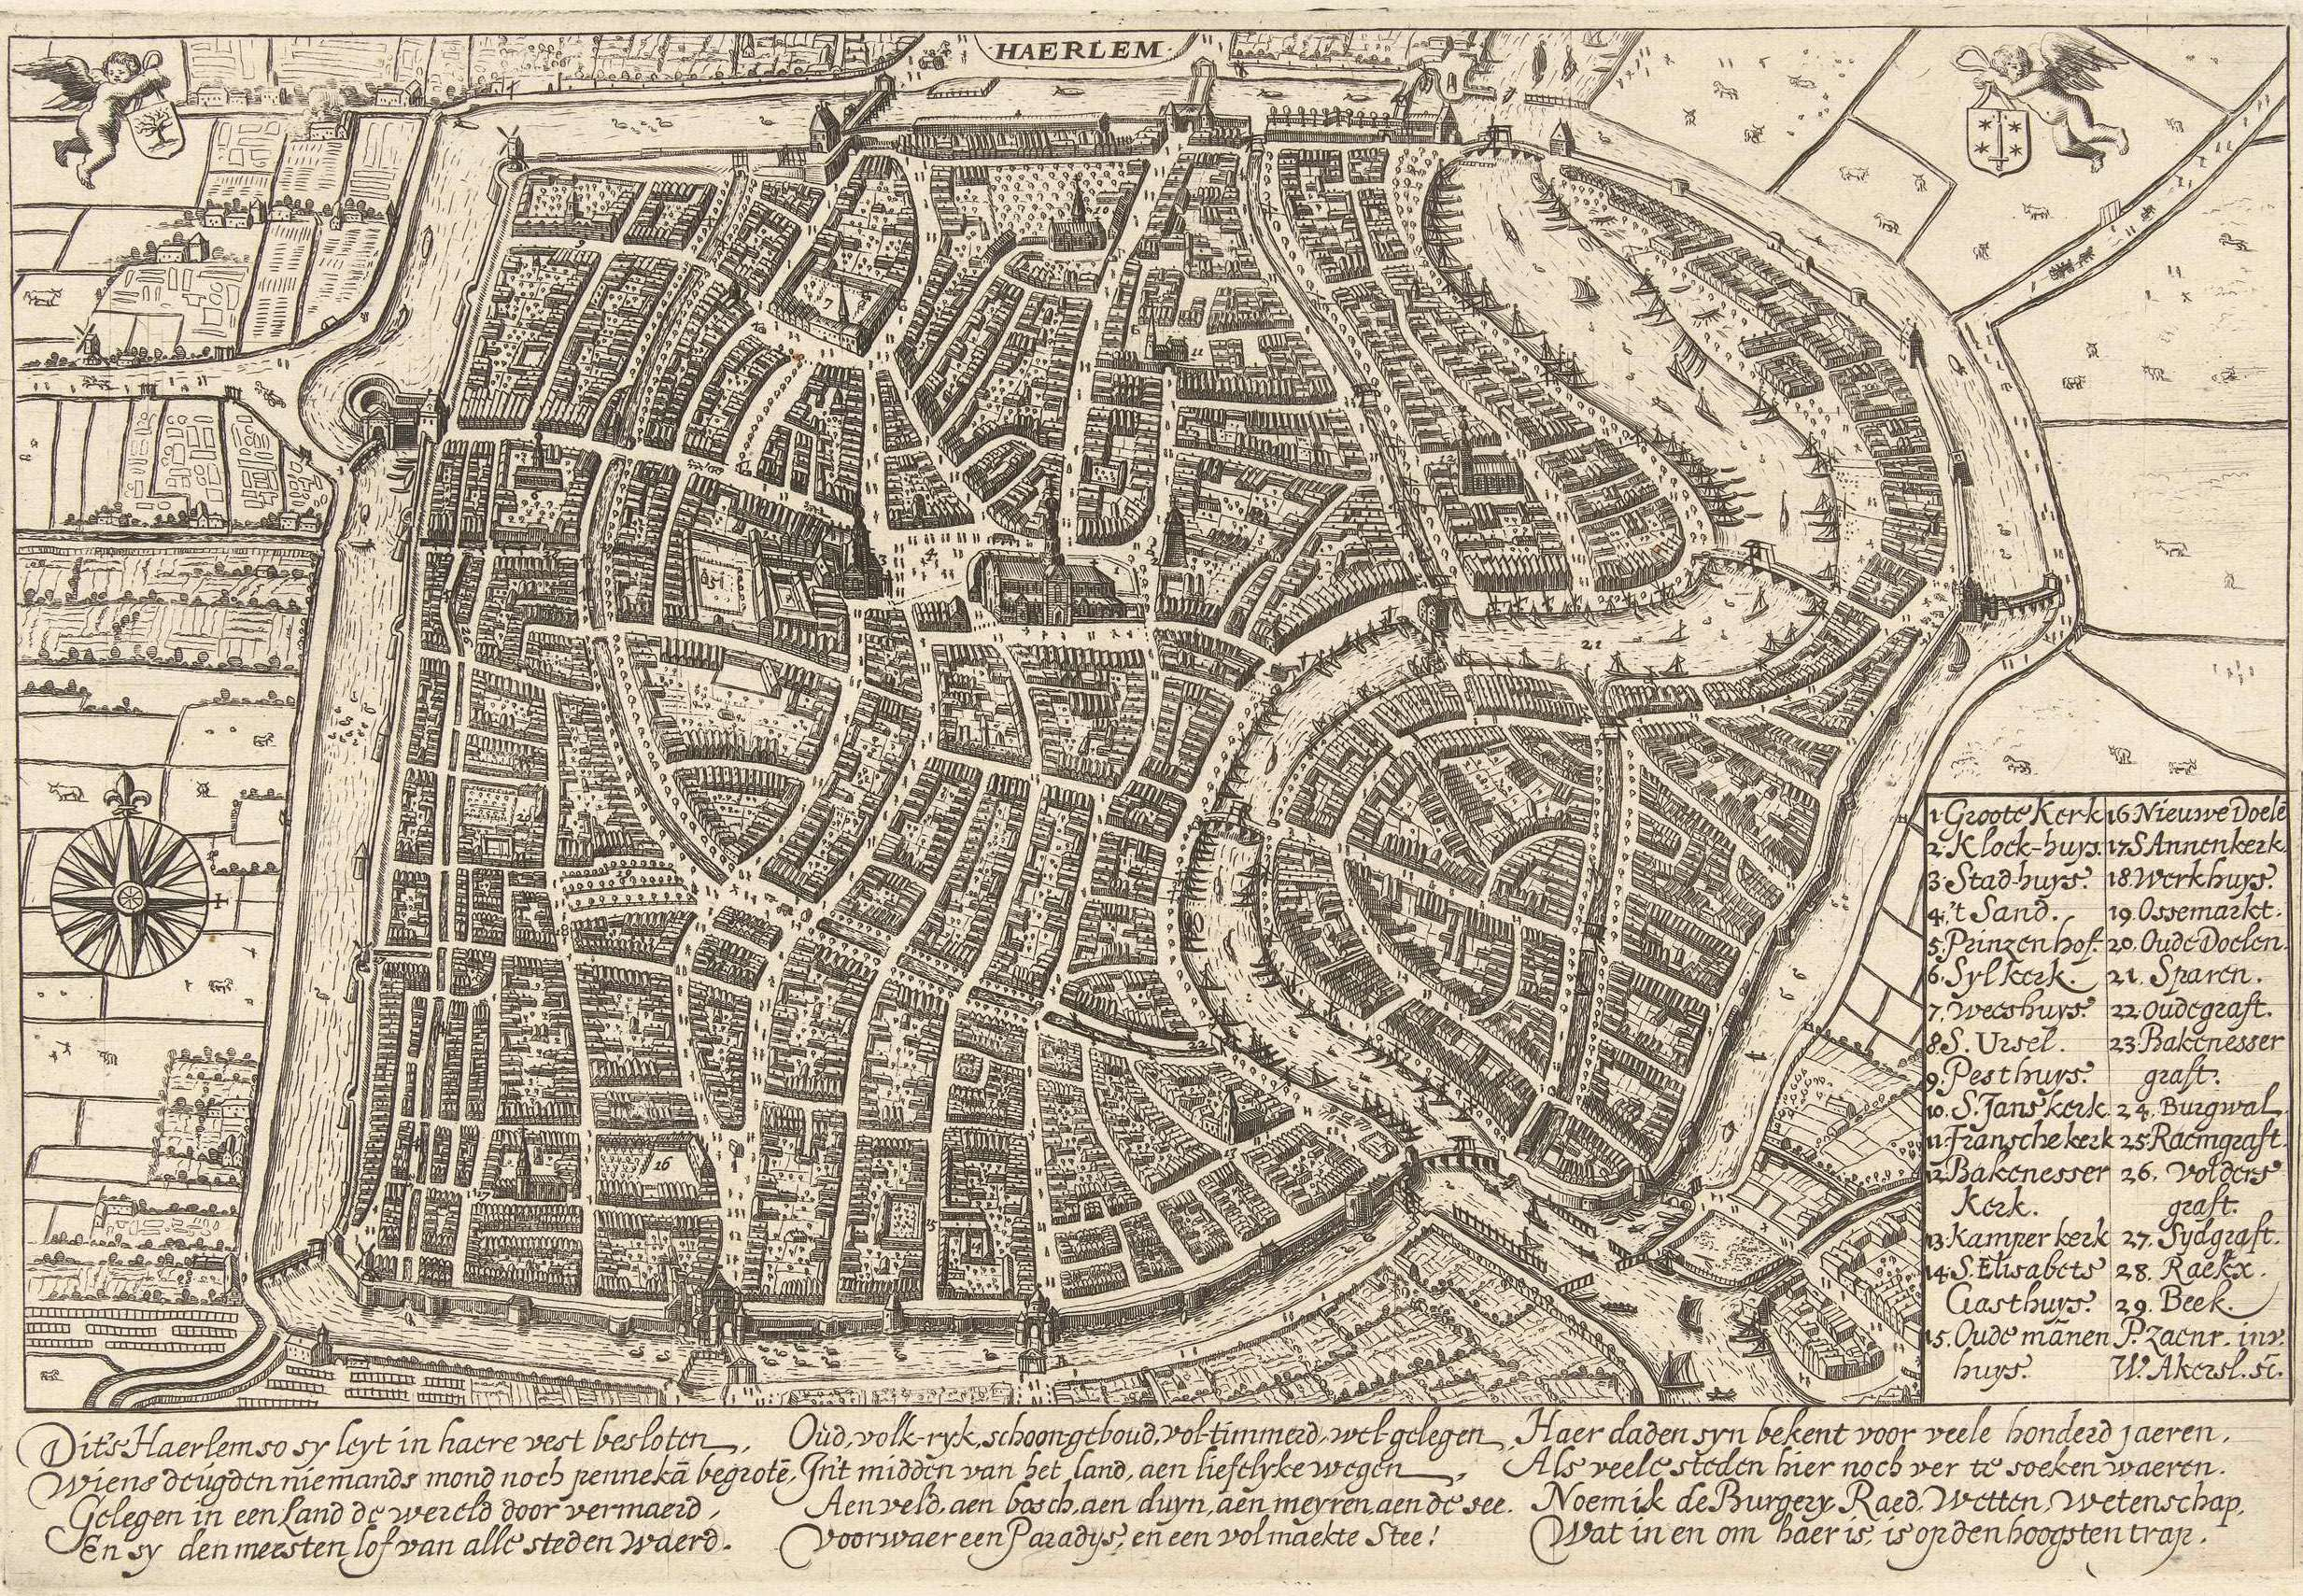 File:Willem Outgertsz Akersloot - map of Haarlem in Samuel Ampzings ...